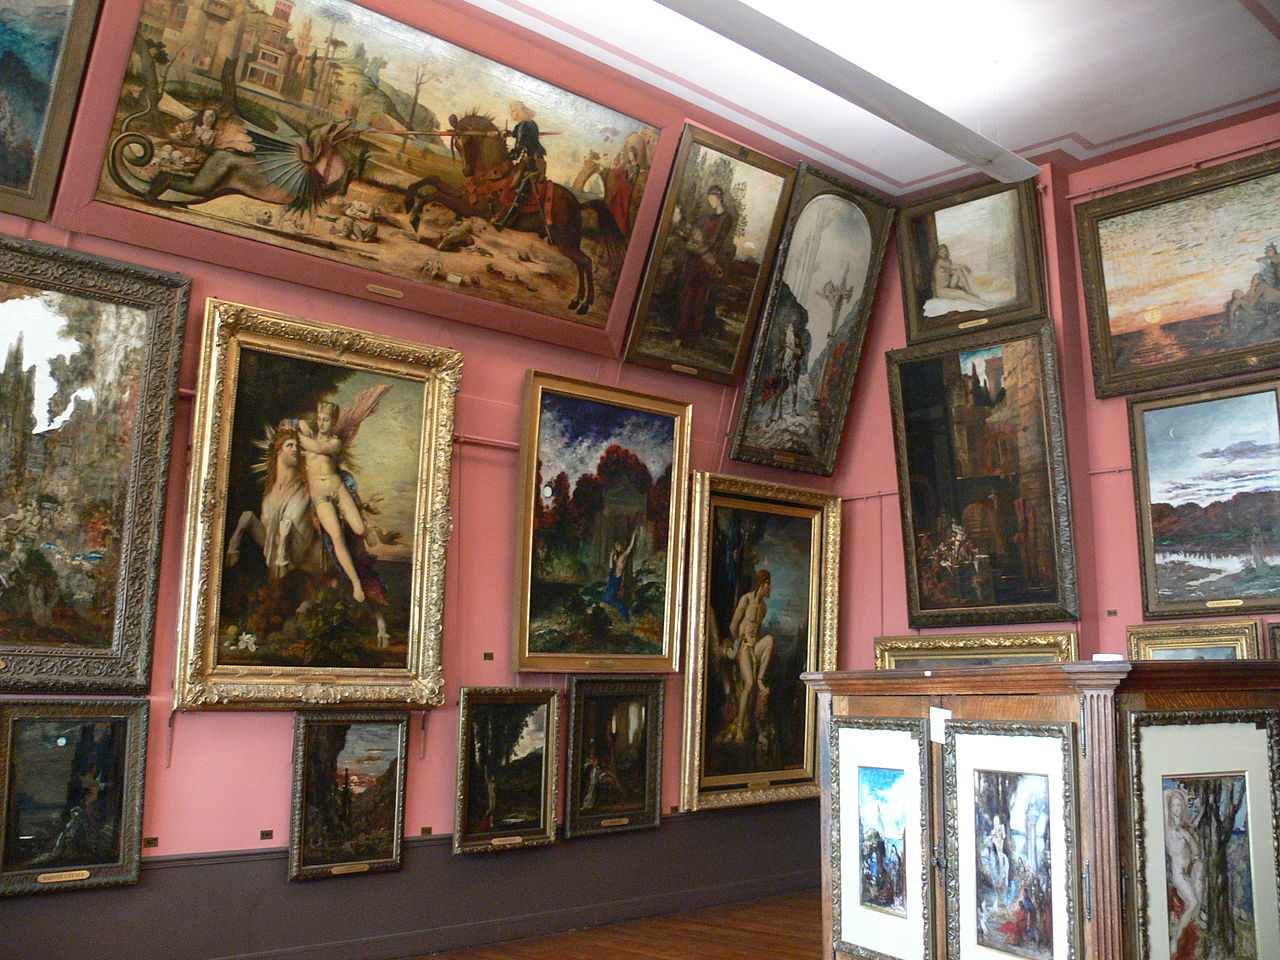 http://upload.wikimedia.org/wikipedia/commons/thumb/1/16/Paris_Musee_Gustave-Moreau_5.jpg/1280px-Paris_Musee_Gustave-Moreau_5.jpg